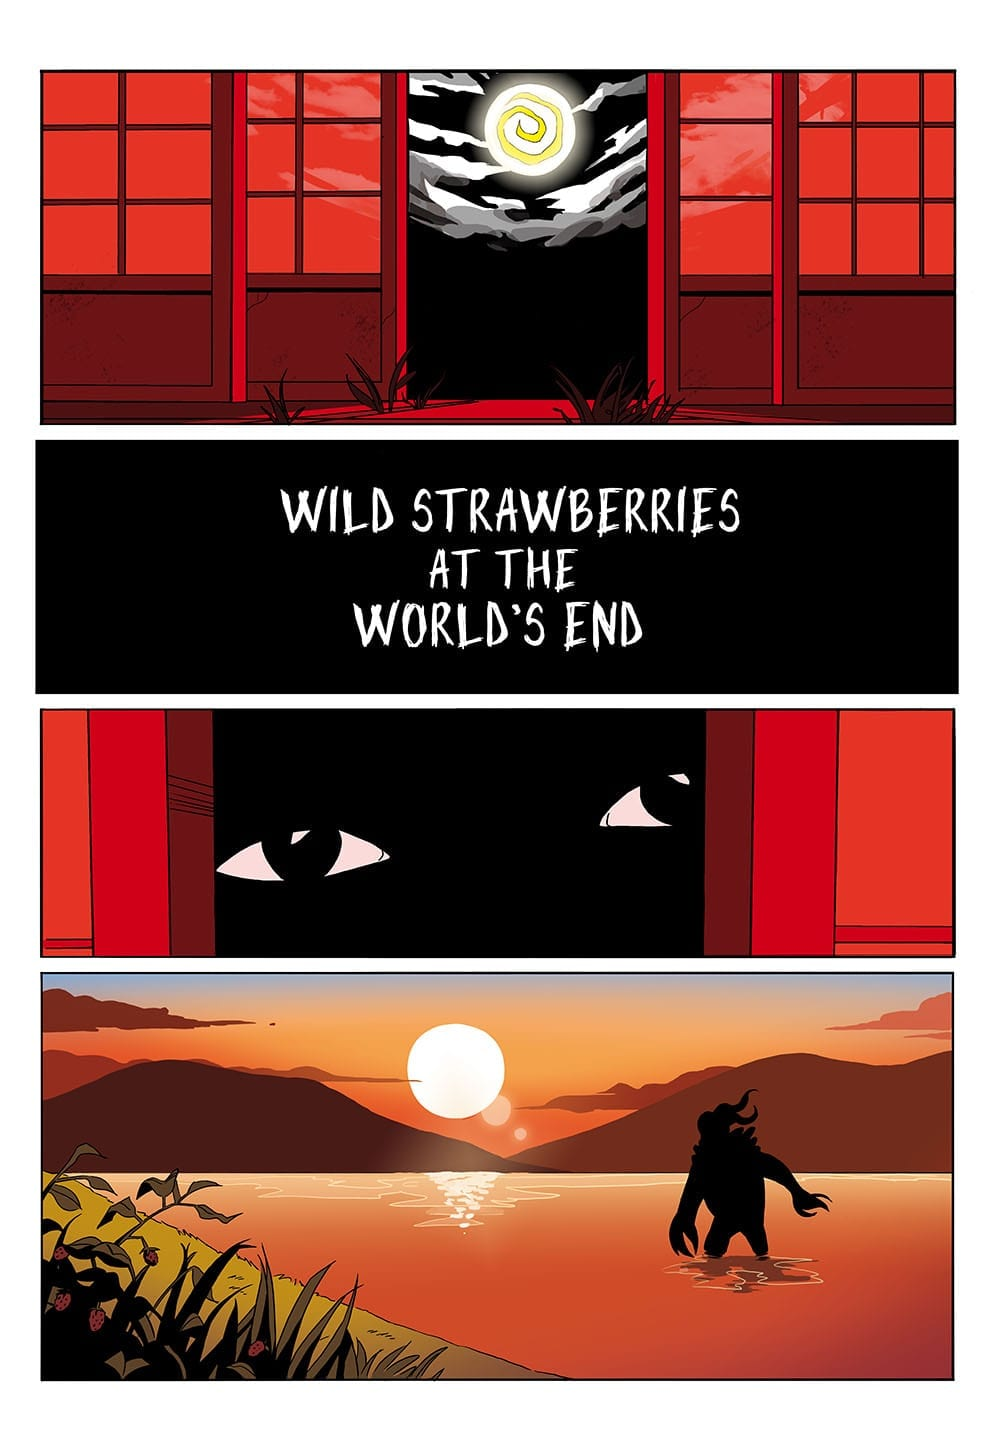 Review: WILD STRAWBERRIES AT THE WORLD'S END is a Great Pick 2